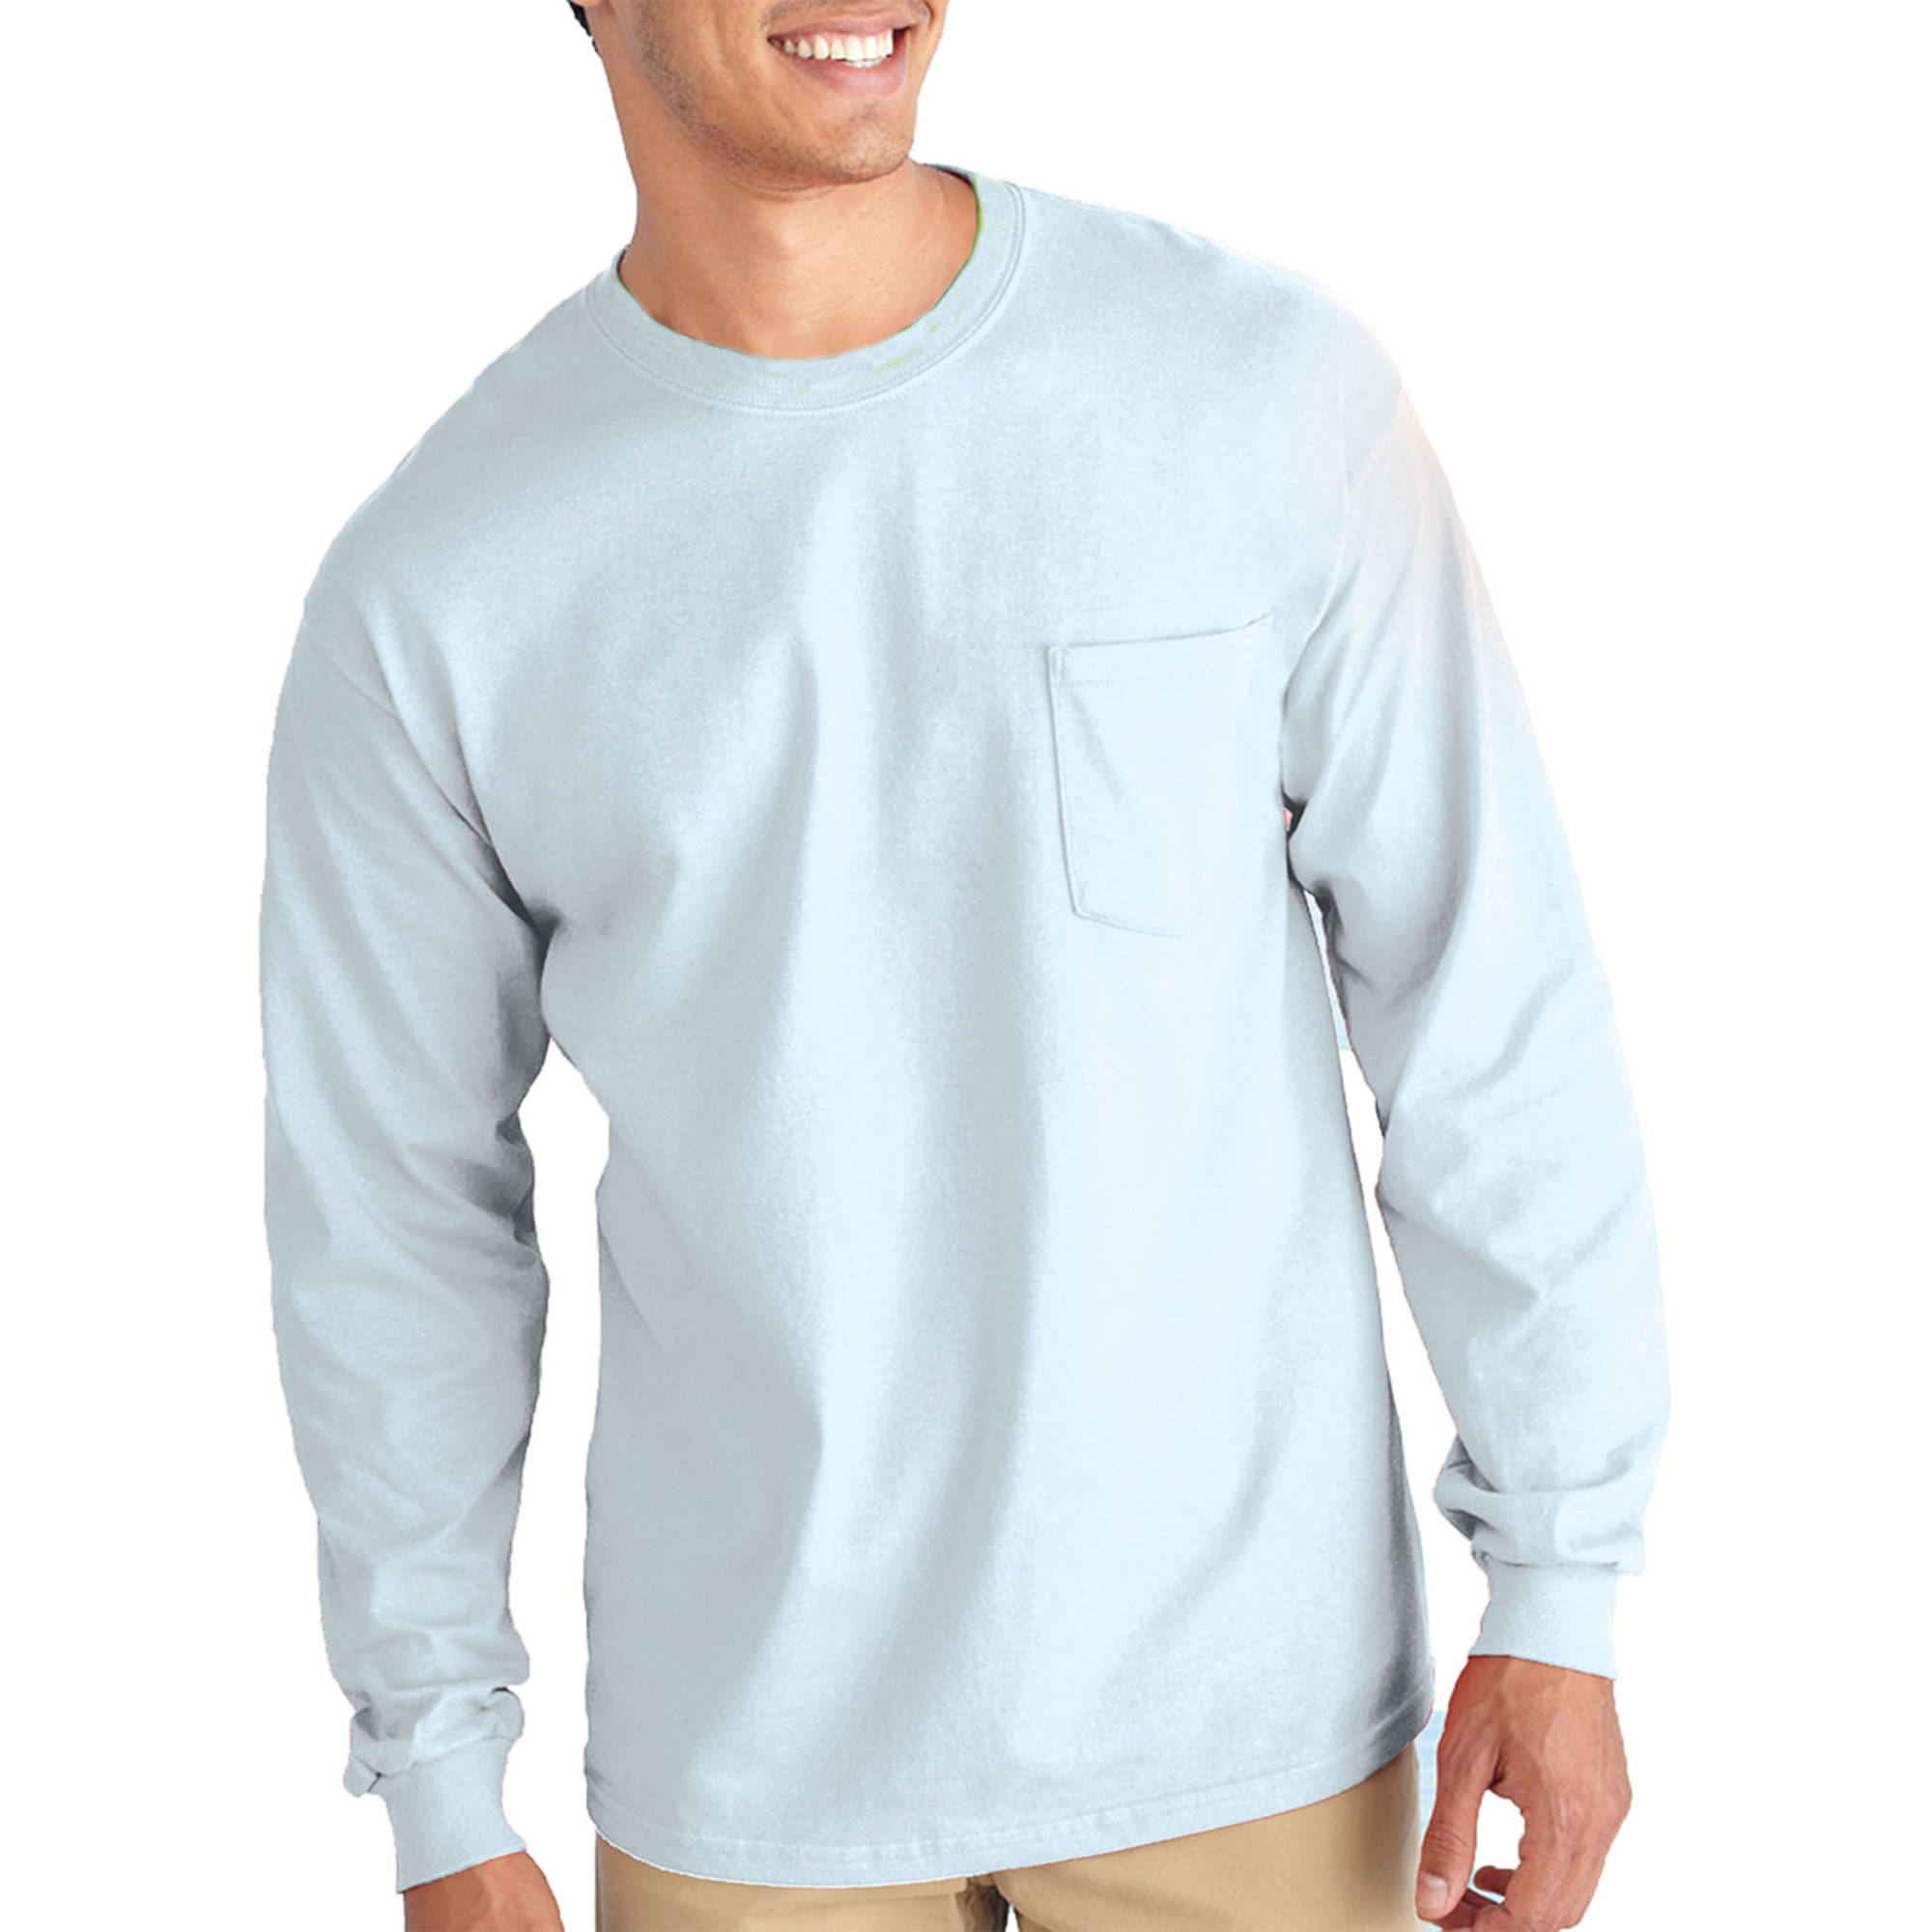 Gildan Mens Classic Long Sleeve Pocket T-Shirt - Walmart.com